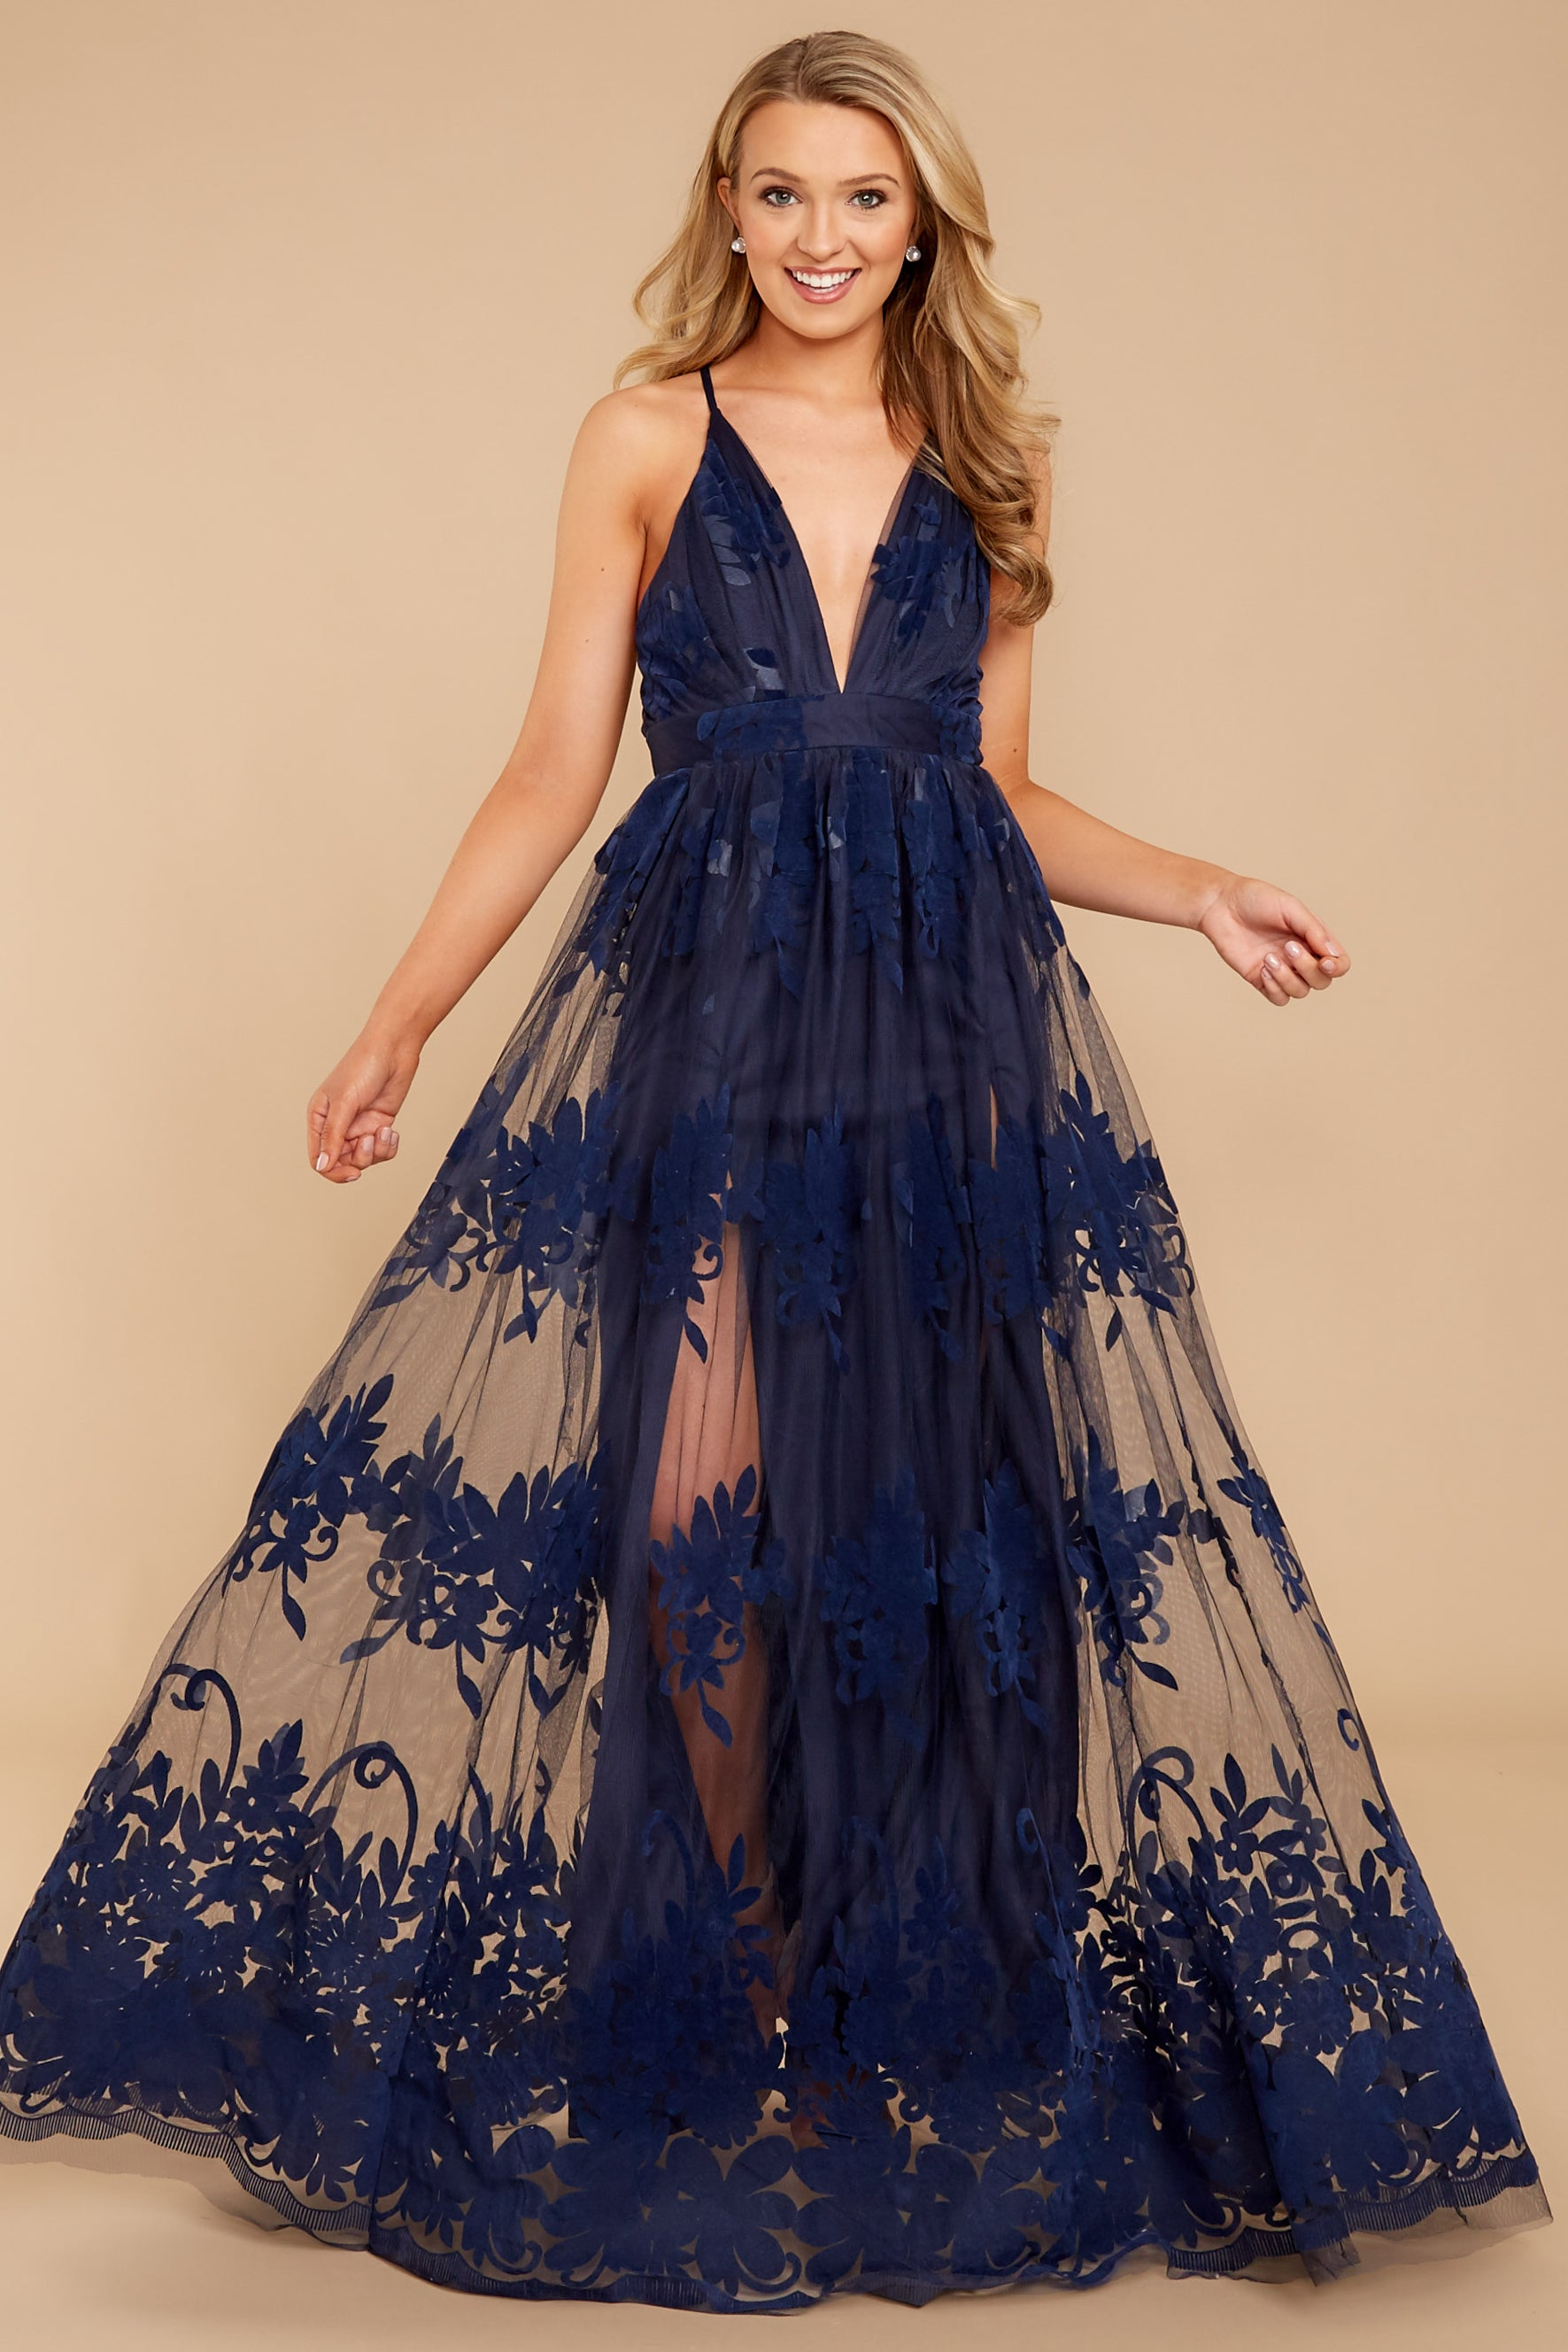 70bd896557 Gorgeous Navy Tulle Gown - Formal Lace Maxi Dress - Dress - $68.00 ...